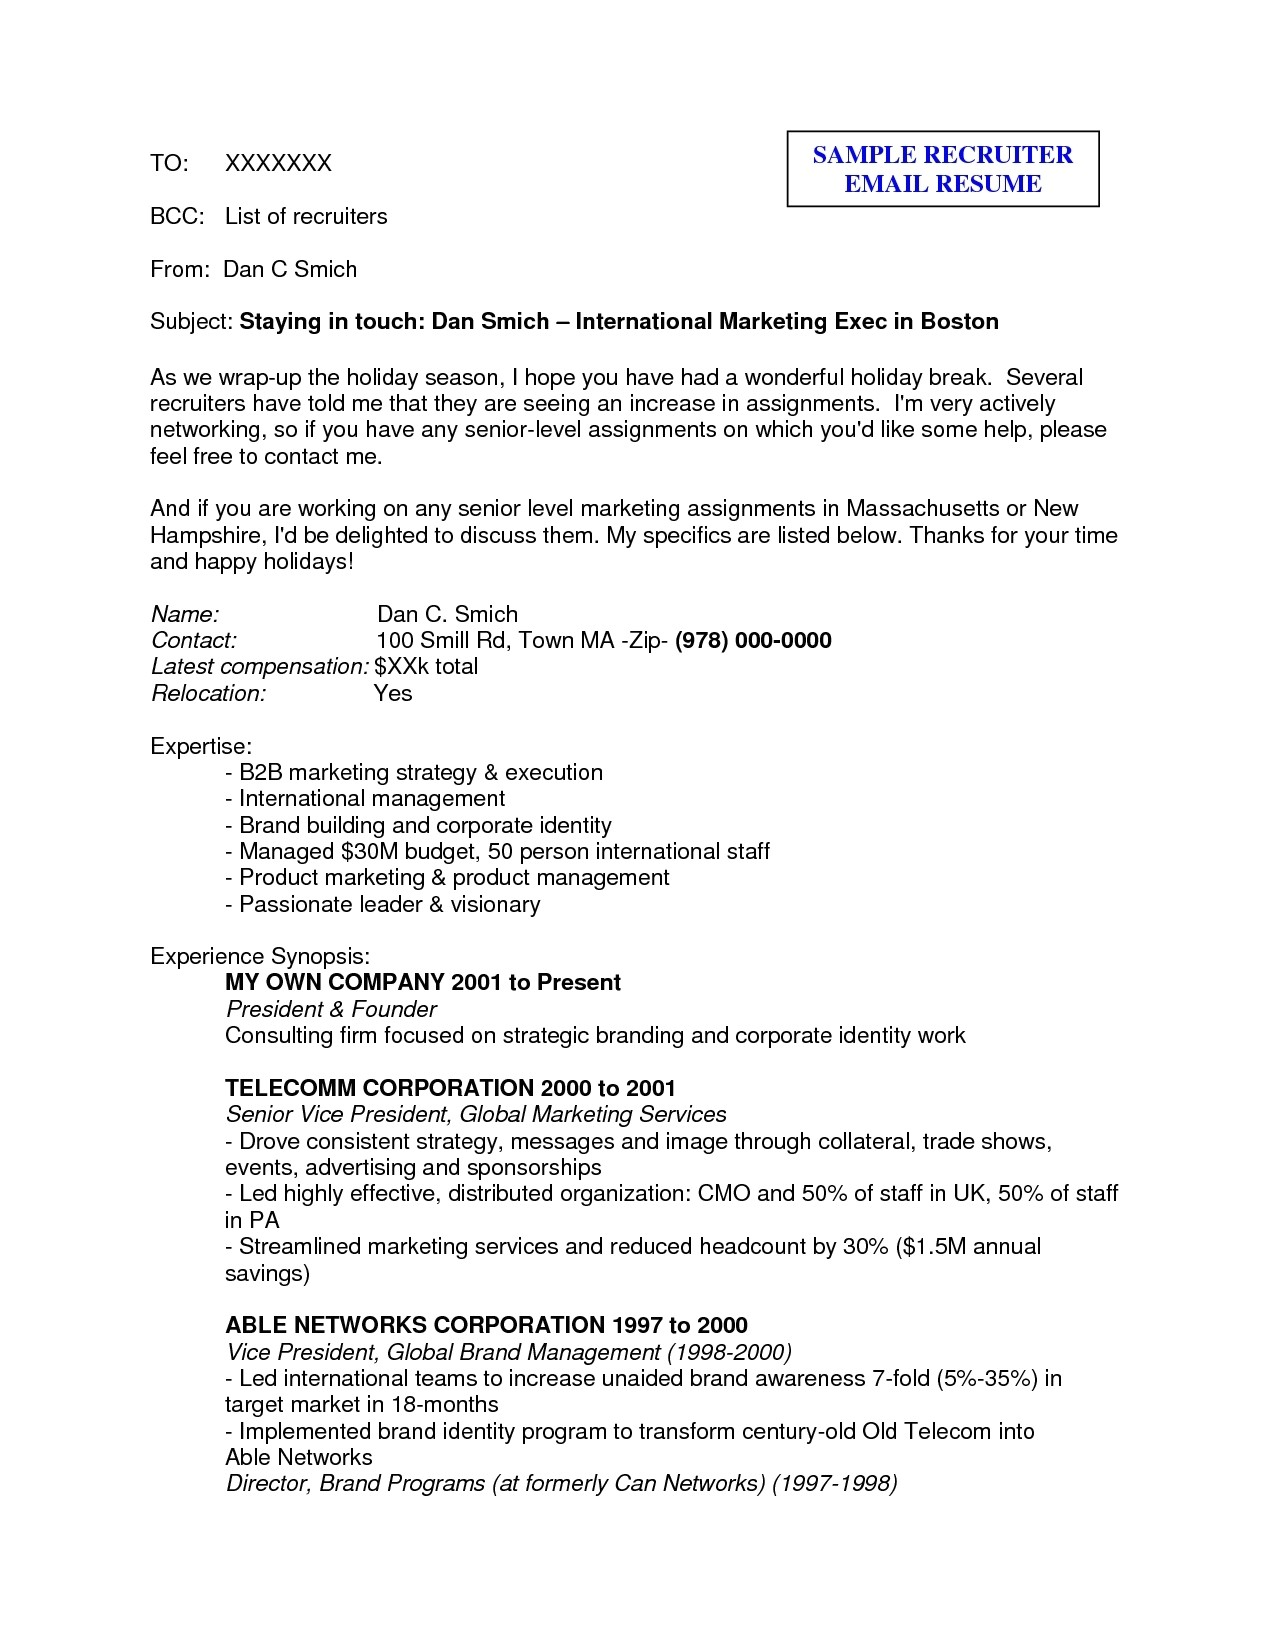 Sample Email to Send Resume for Job Sample Email to Send Resume to Recruiter Cryptoave Free